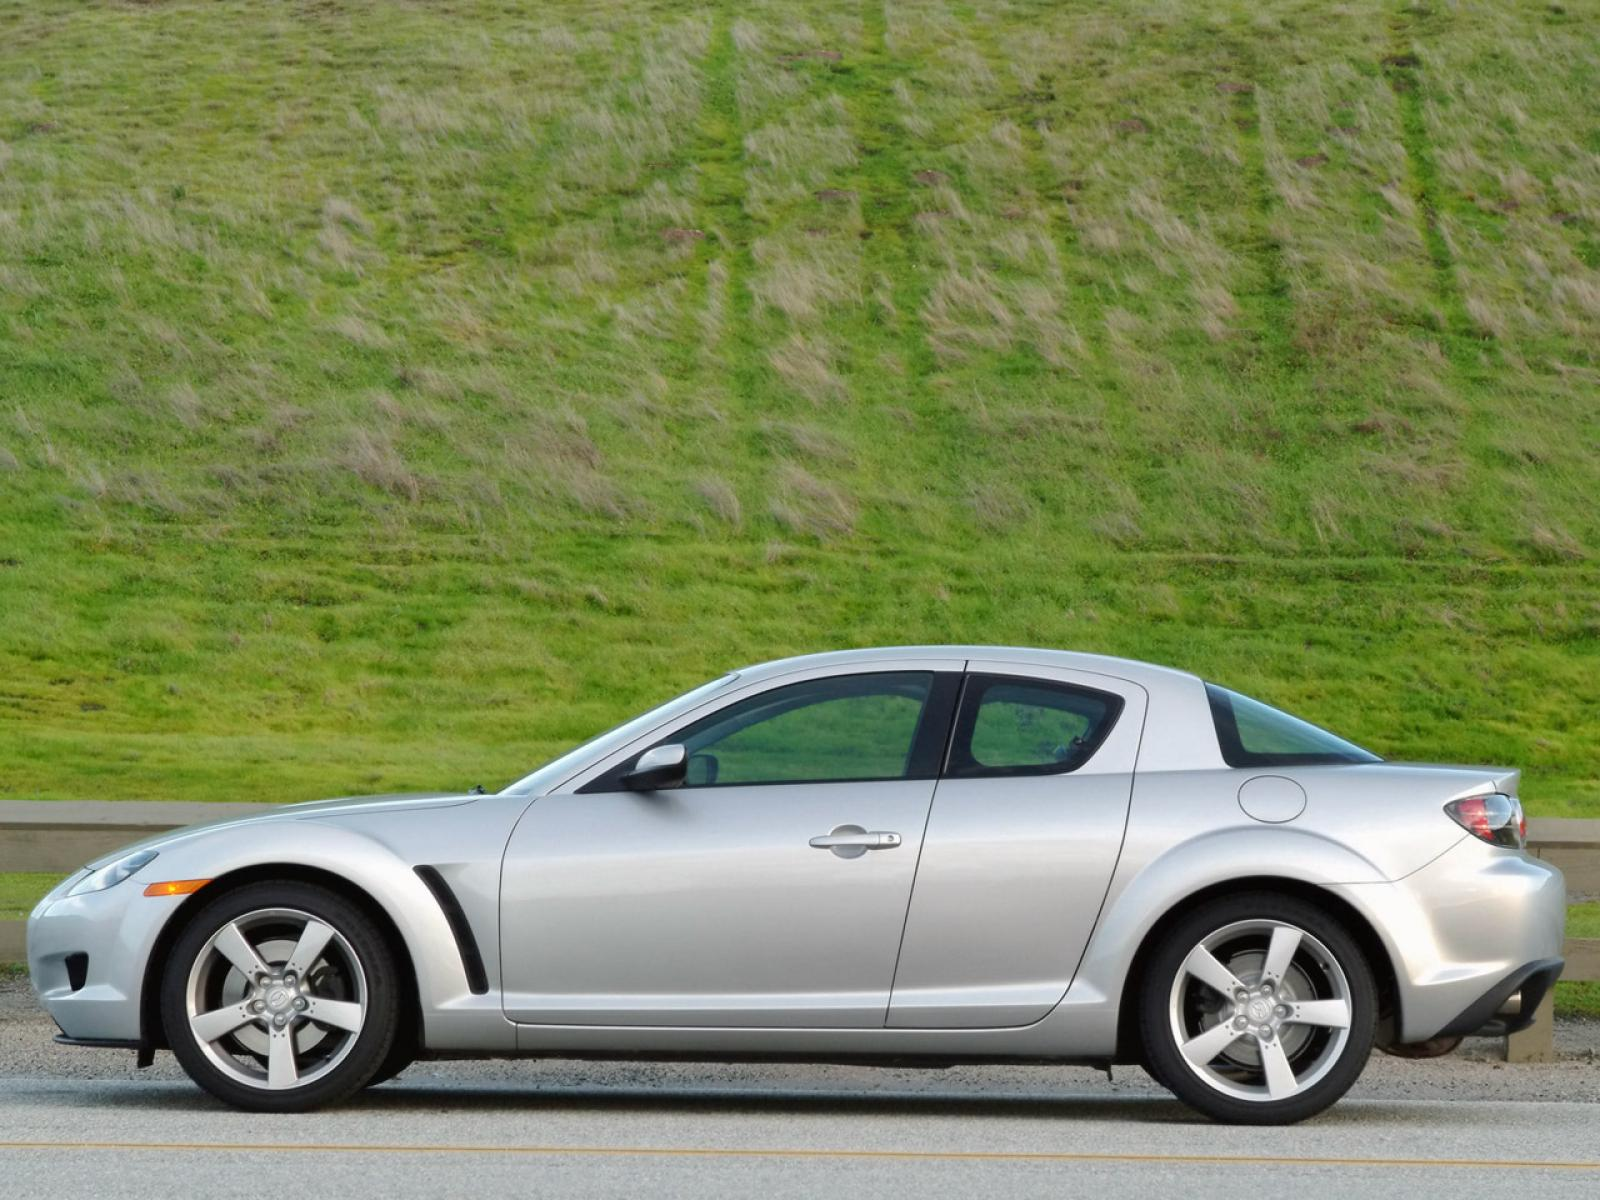 2004 mazda rx 8 information and photos zombiedrive. Black Bedroom Furniture Sets. Home Design Ideas